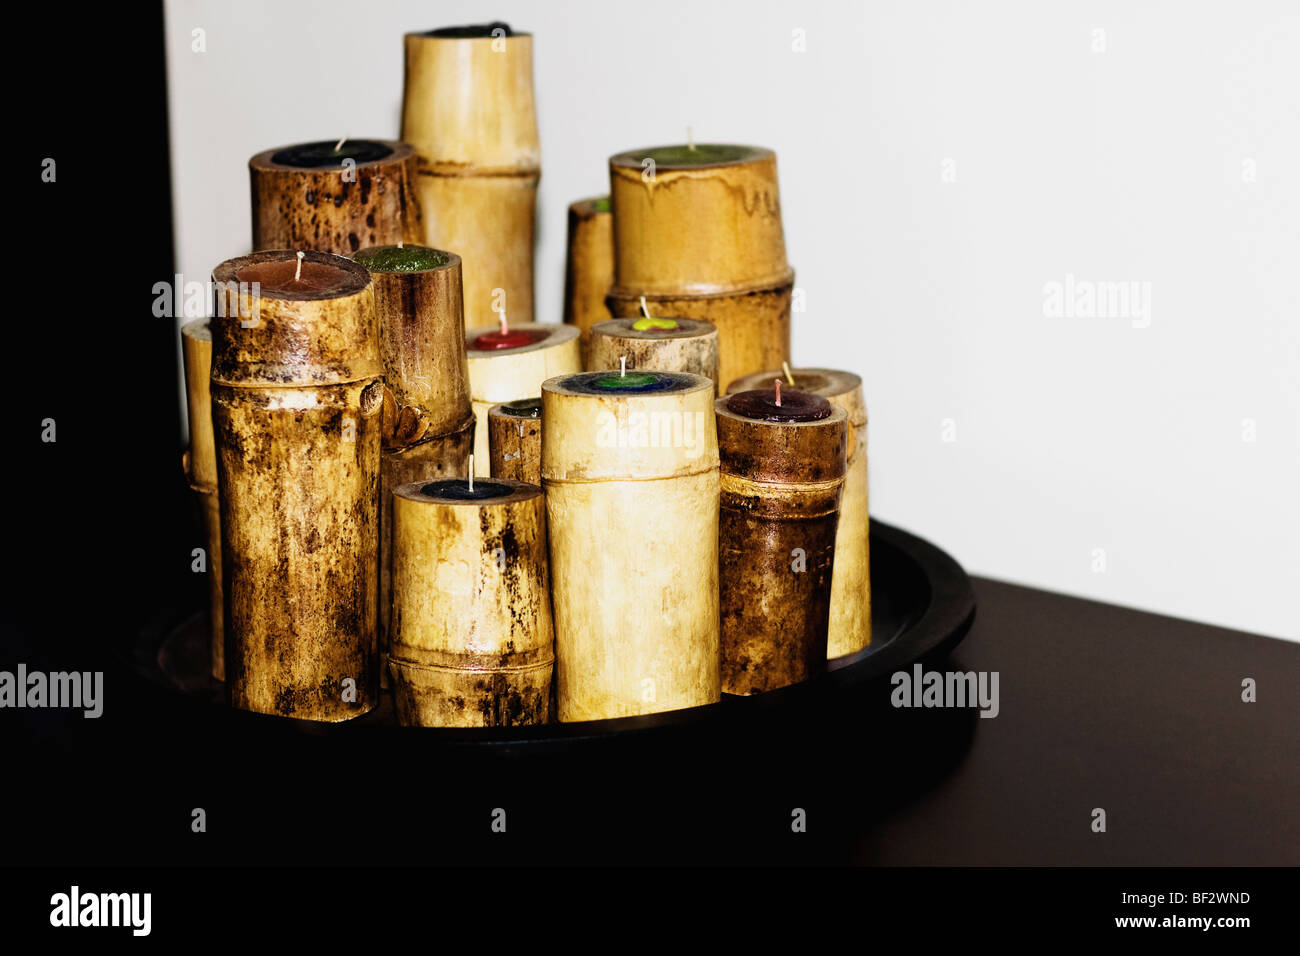 Bamboo shaped candles in a tray - Stock Image